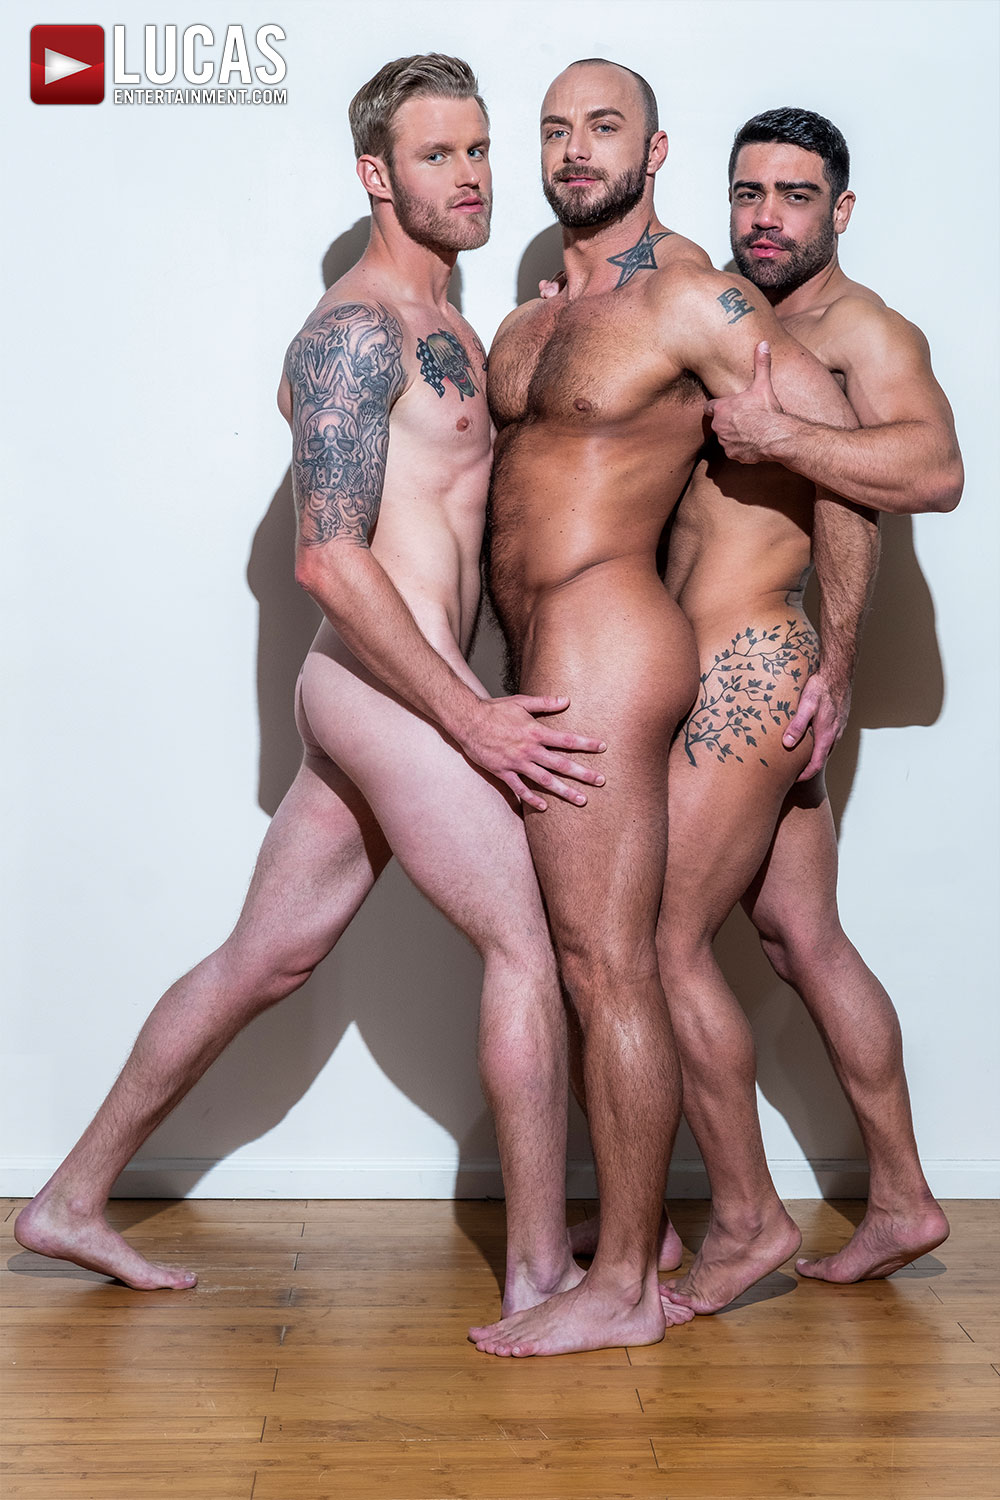 Jessie Colter Takes Wagner Vittoria and Shawn Reeve's Raw Cocks - Gay Movies - Lucas Entertainment